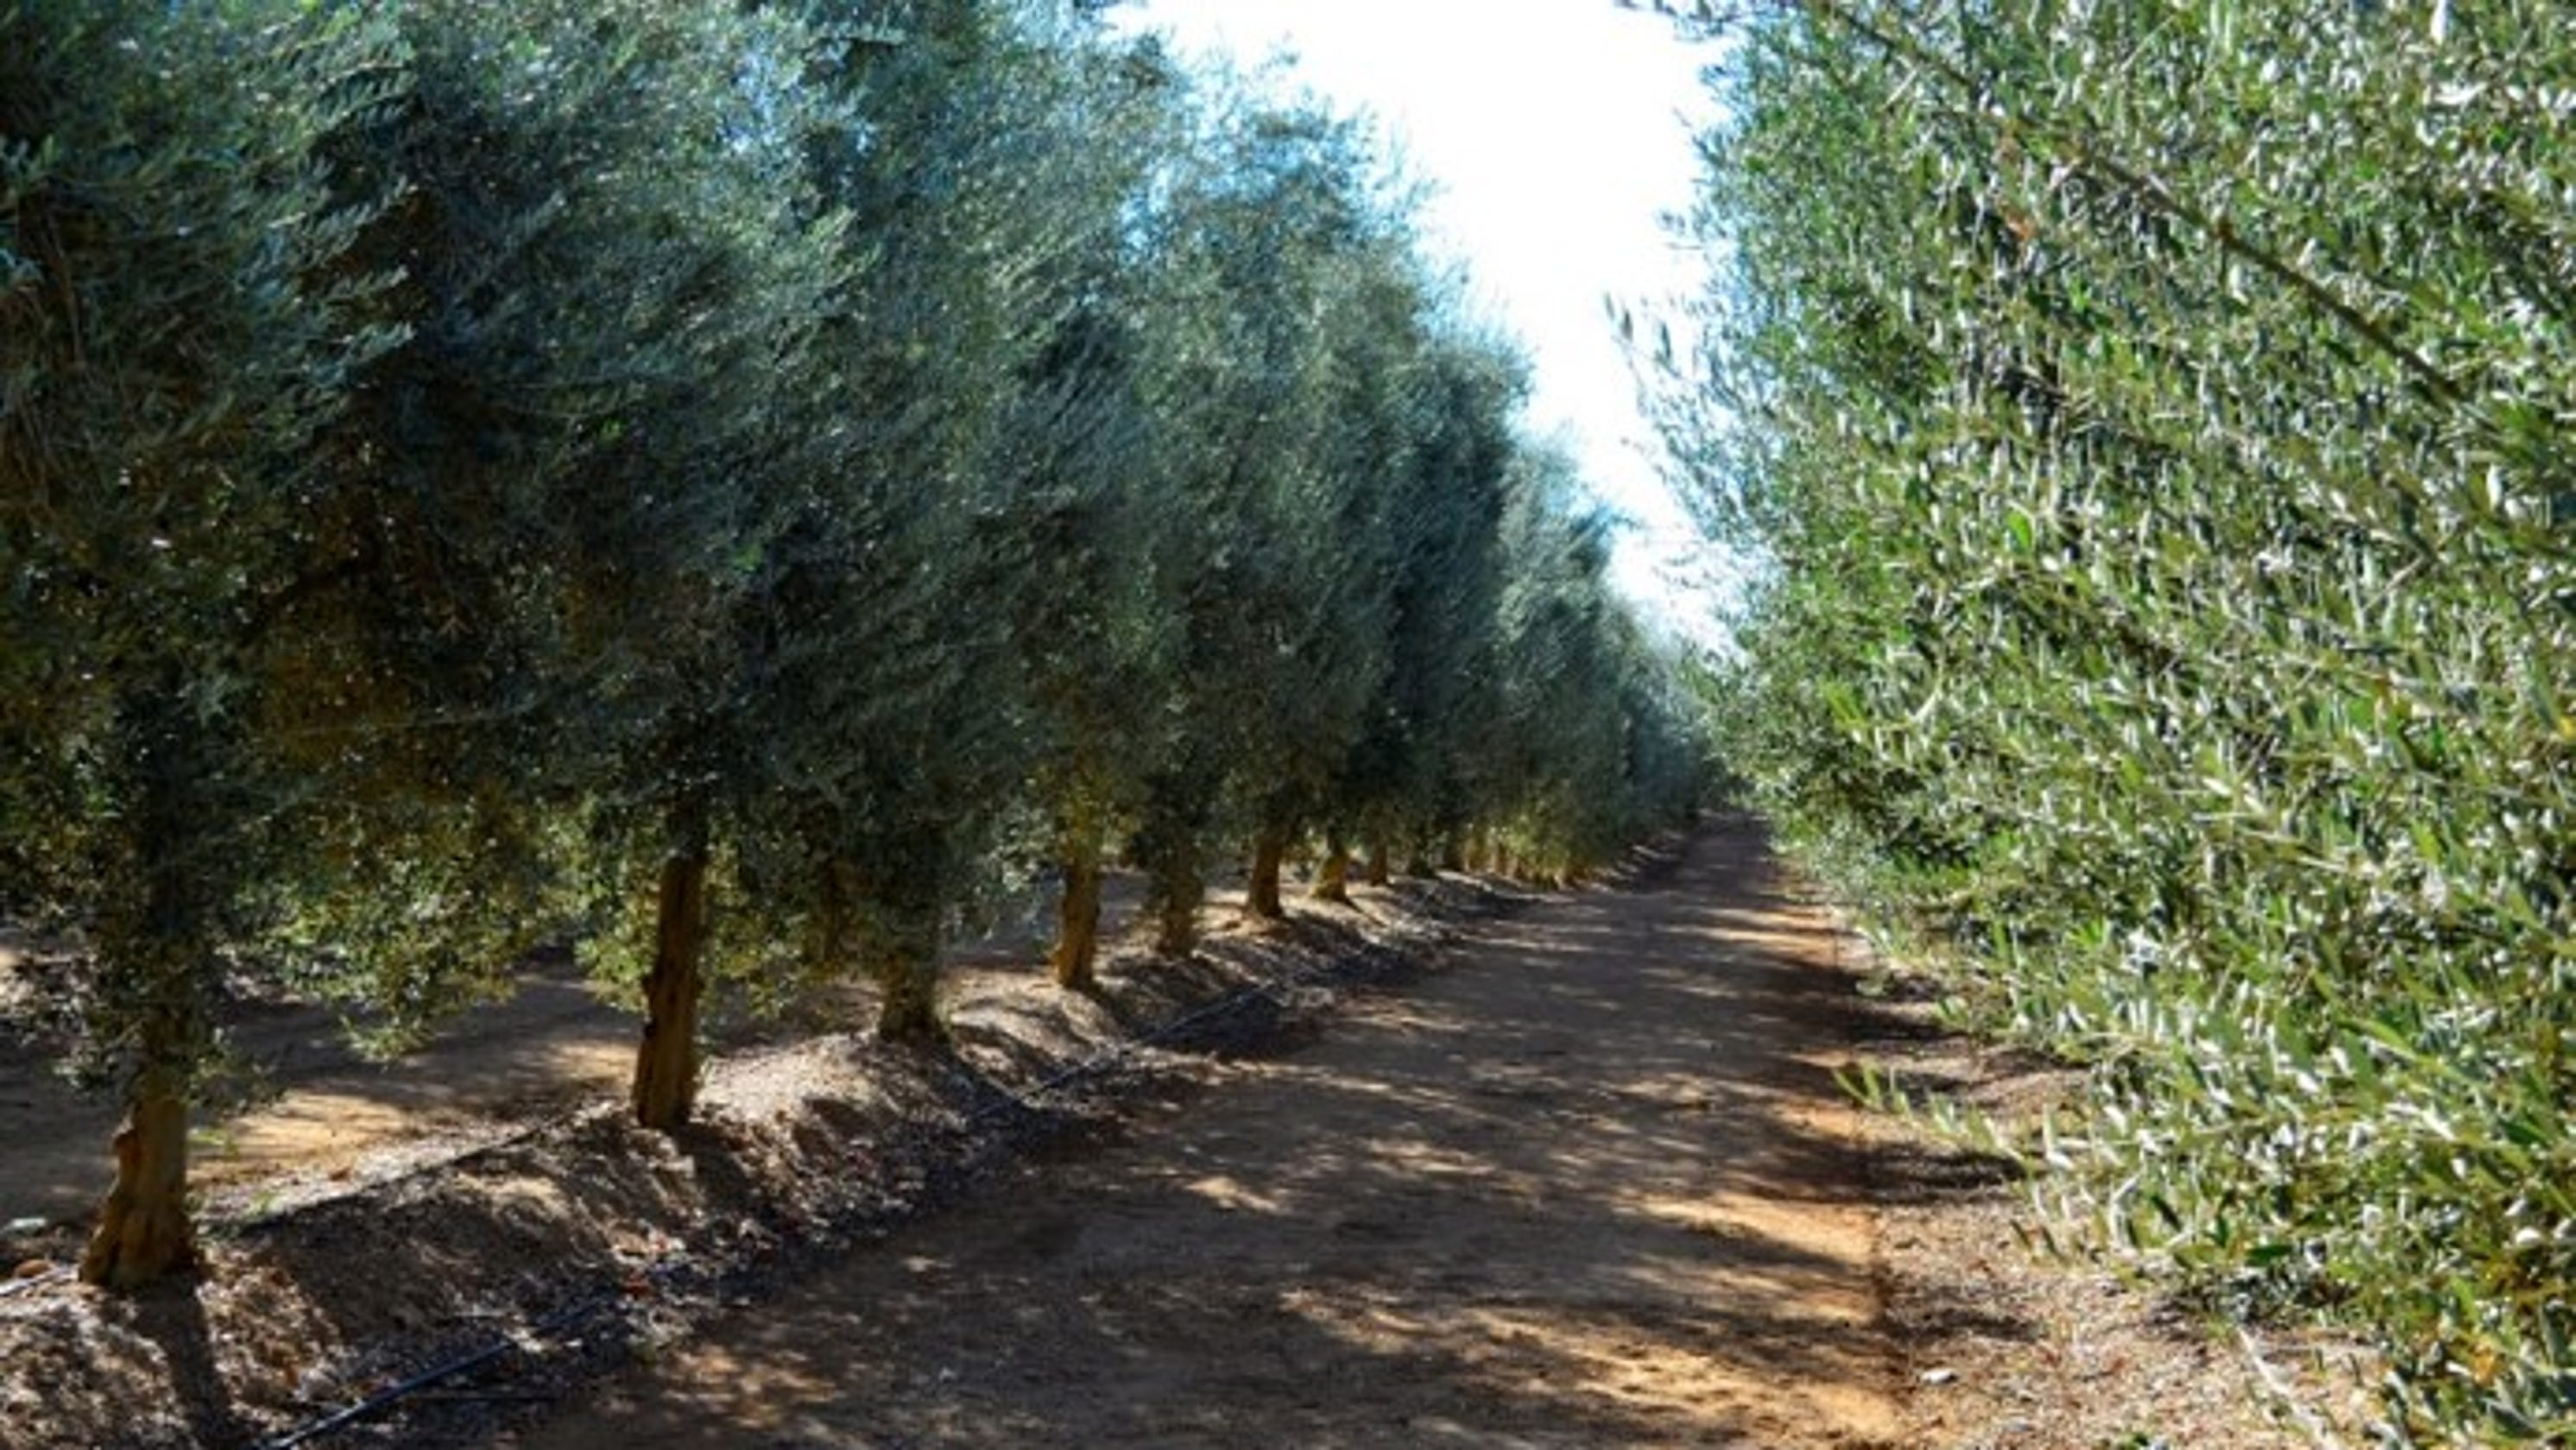 Musco Family says no to Spanish olives, 'steps up' for Central